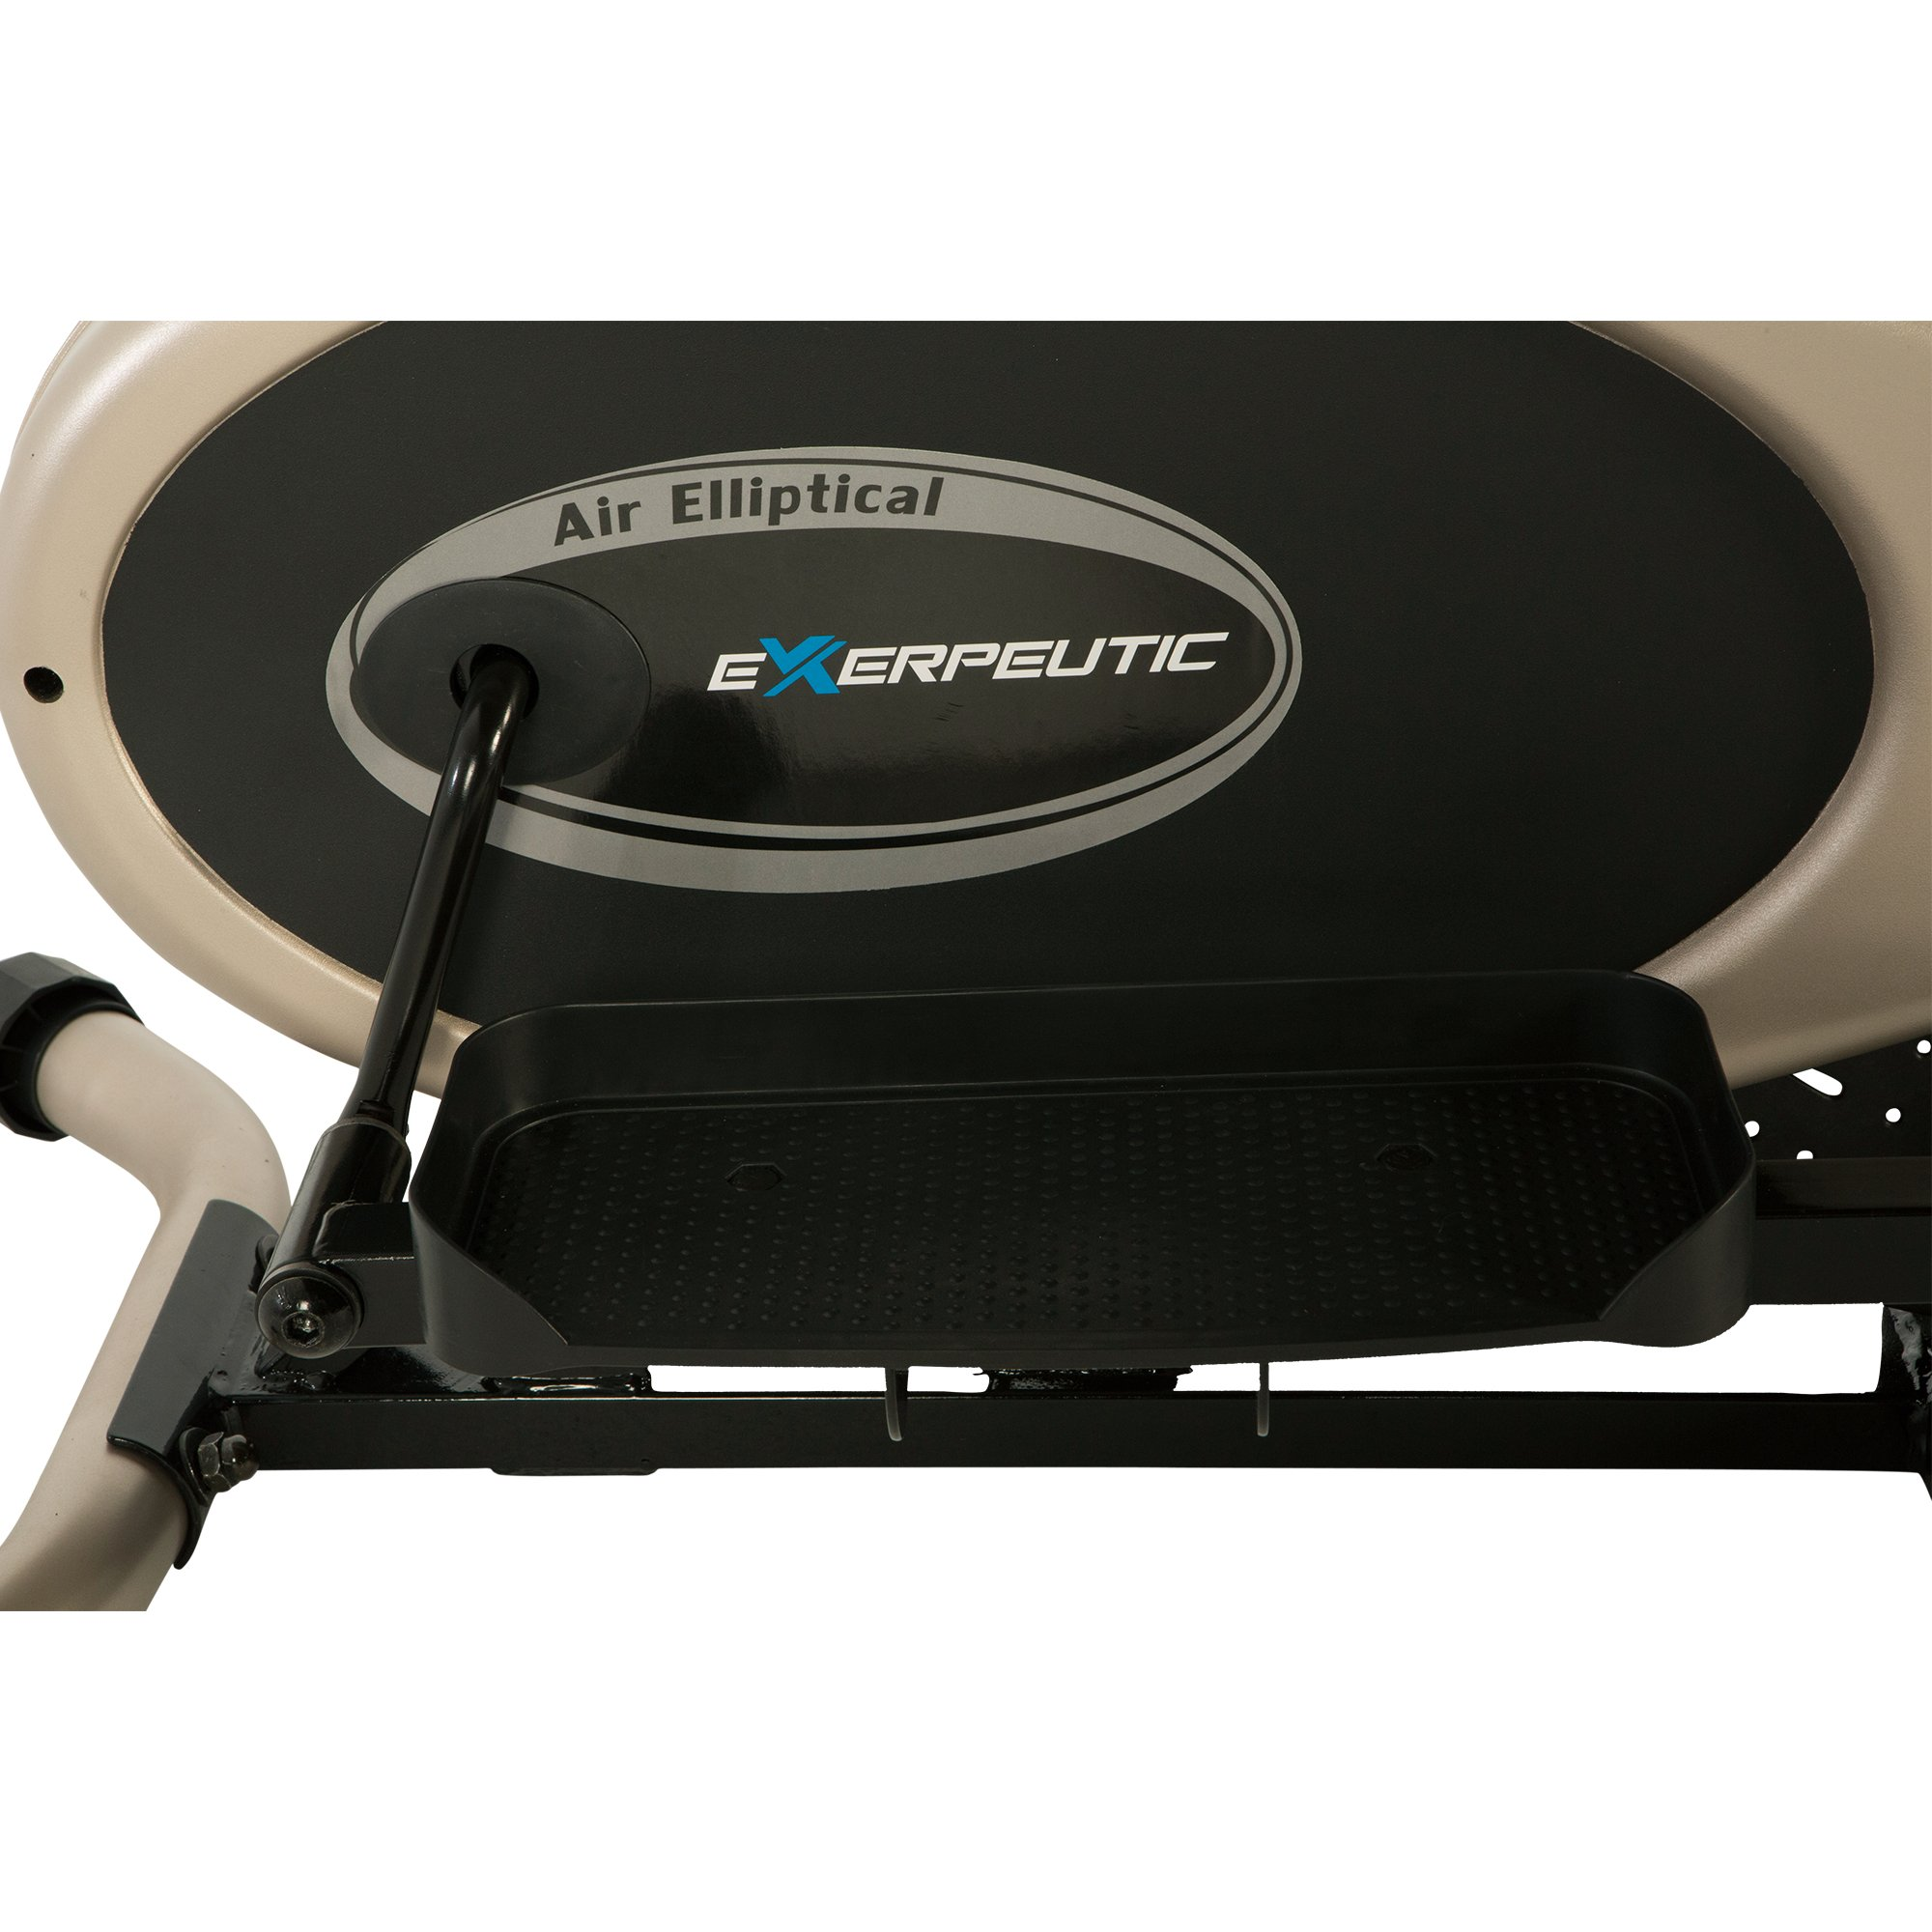 Exerpeutic Gold Elliptical and Exercise Bike Dual Trainer by Exerpeutic (Image #7)